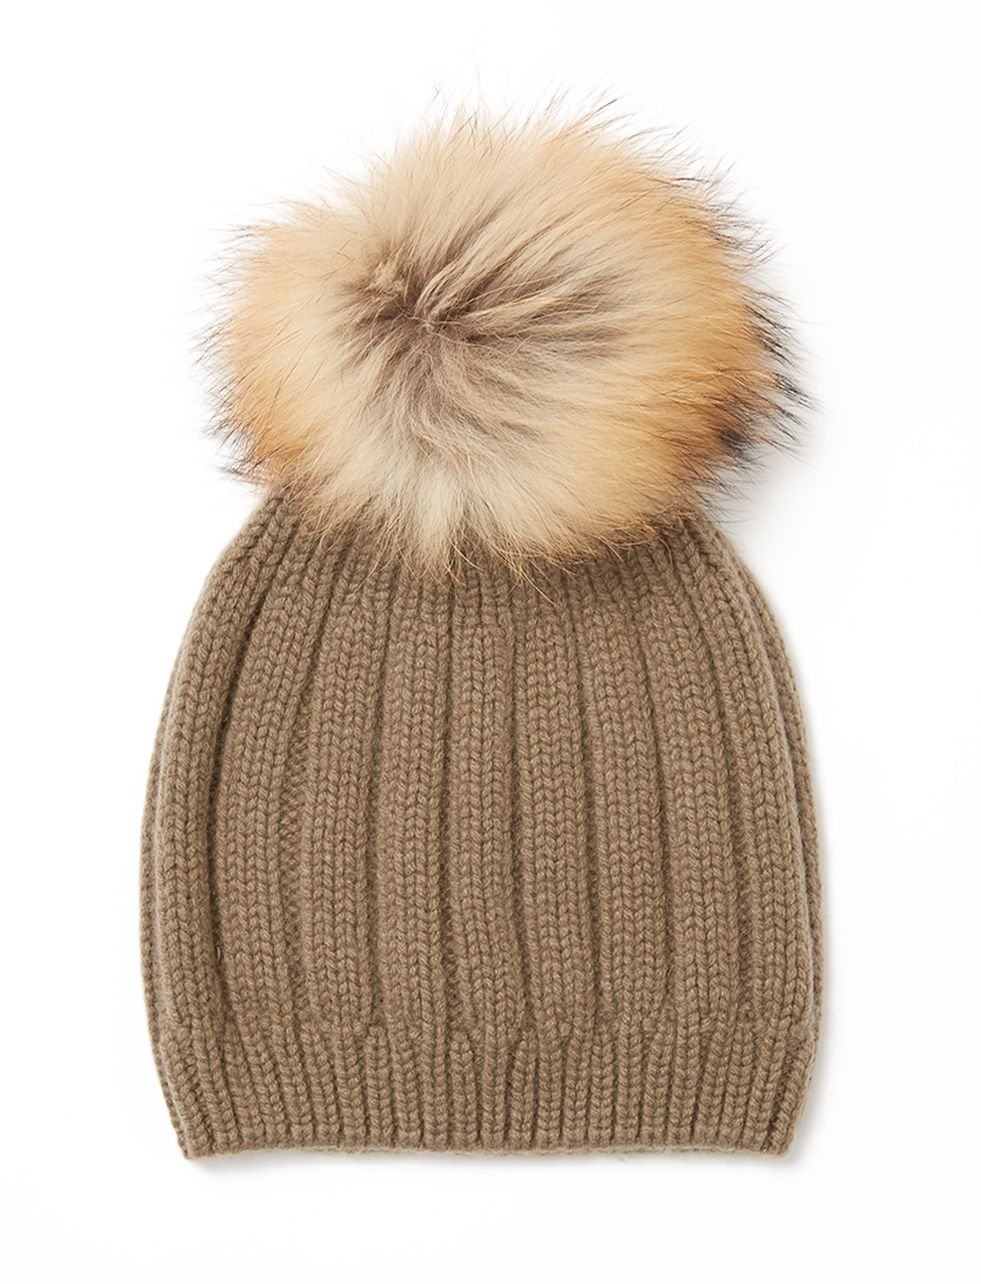 Joseph bobble hat